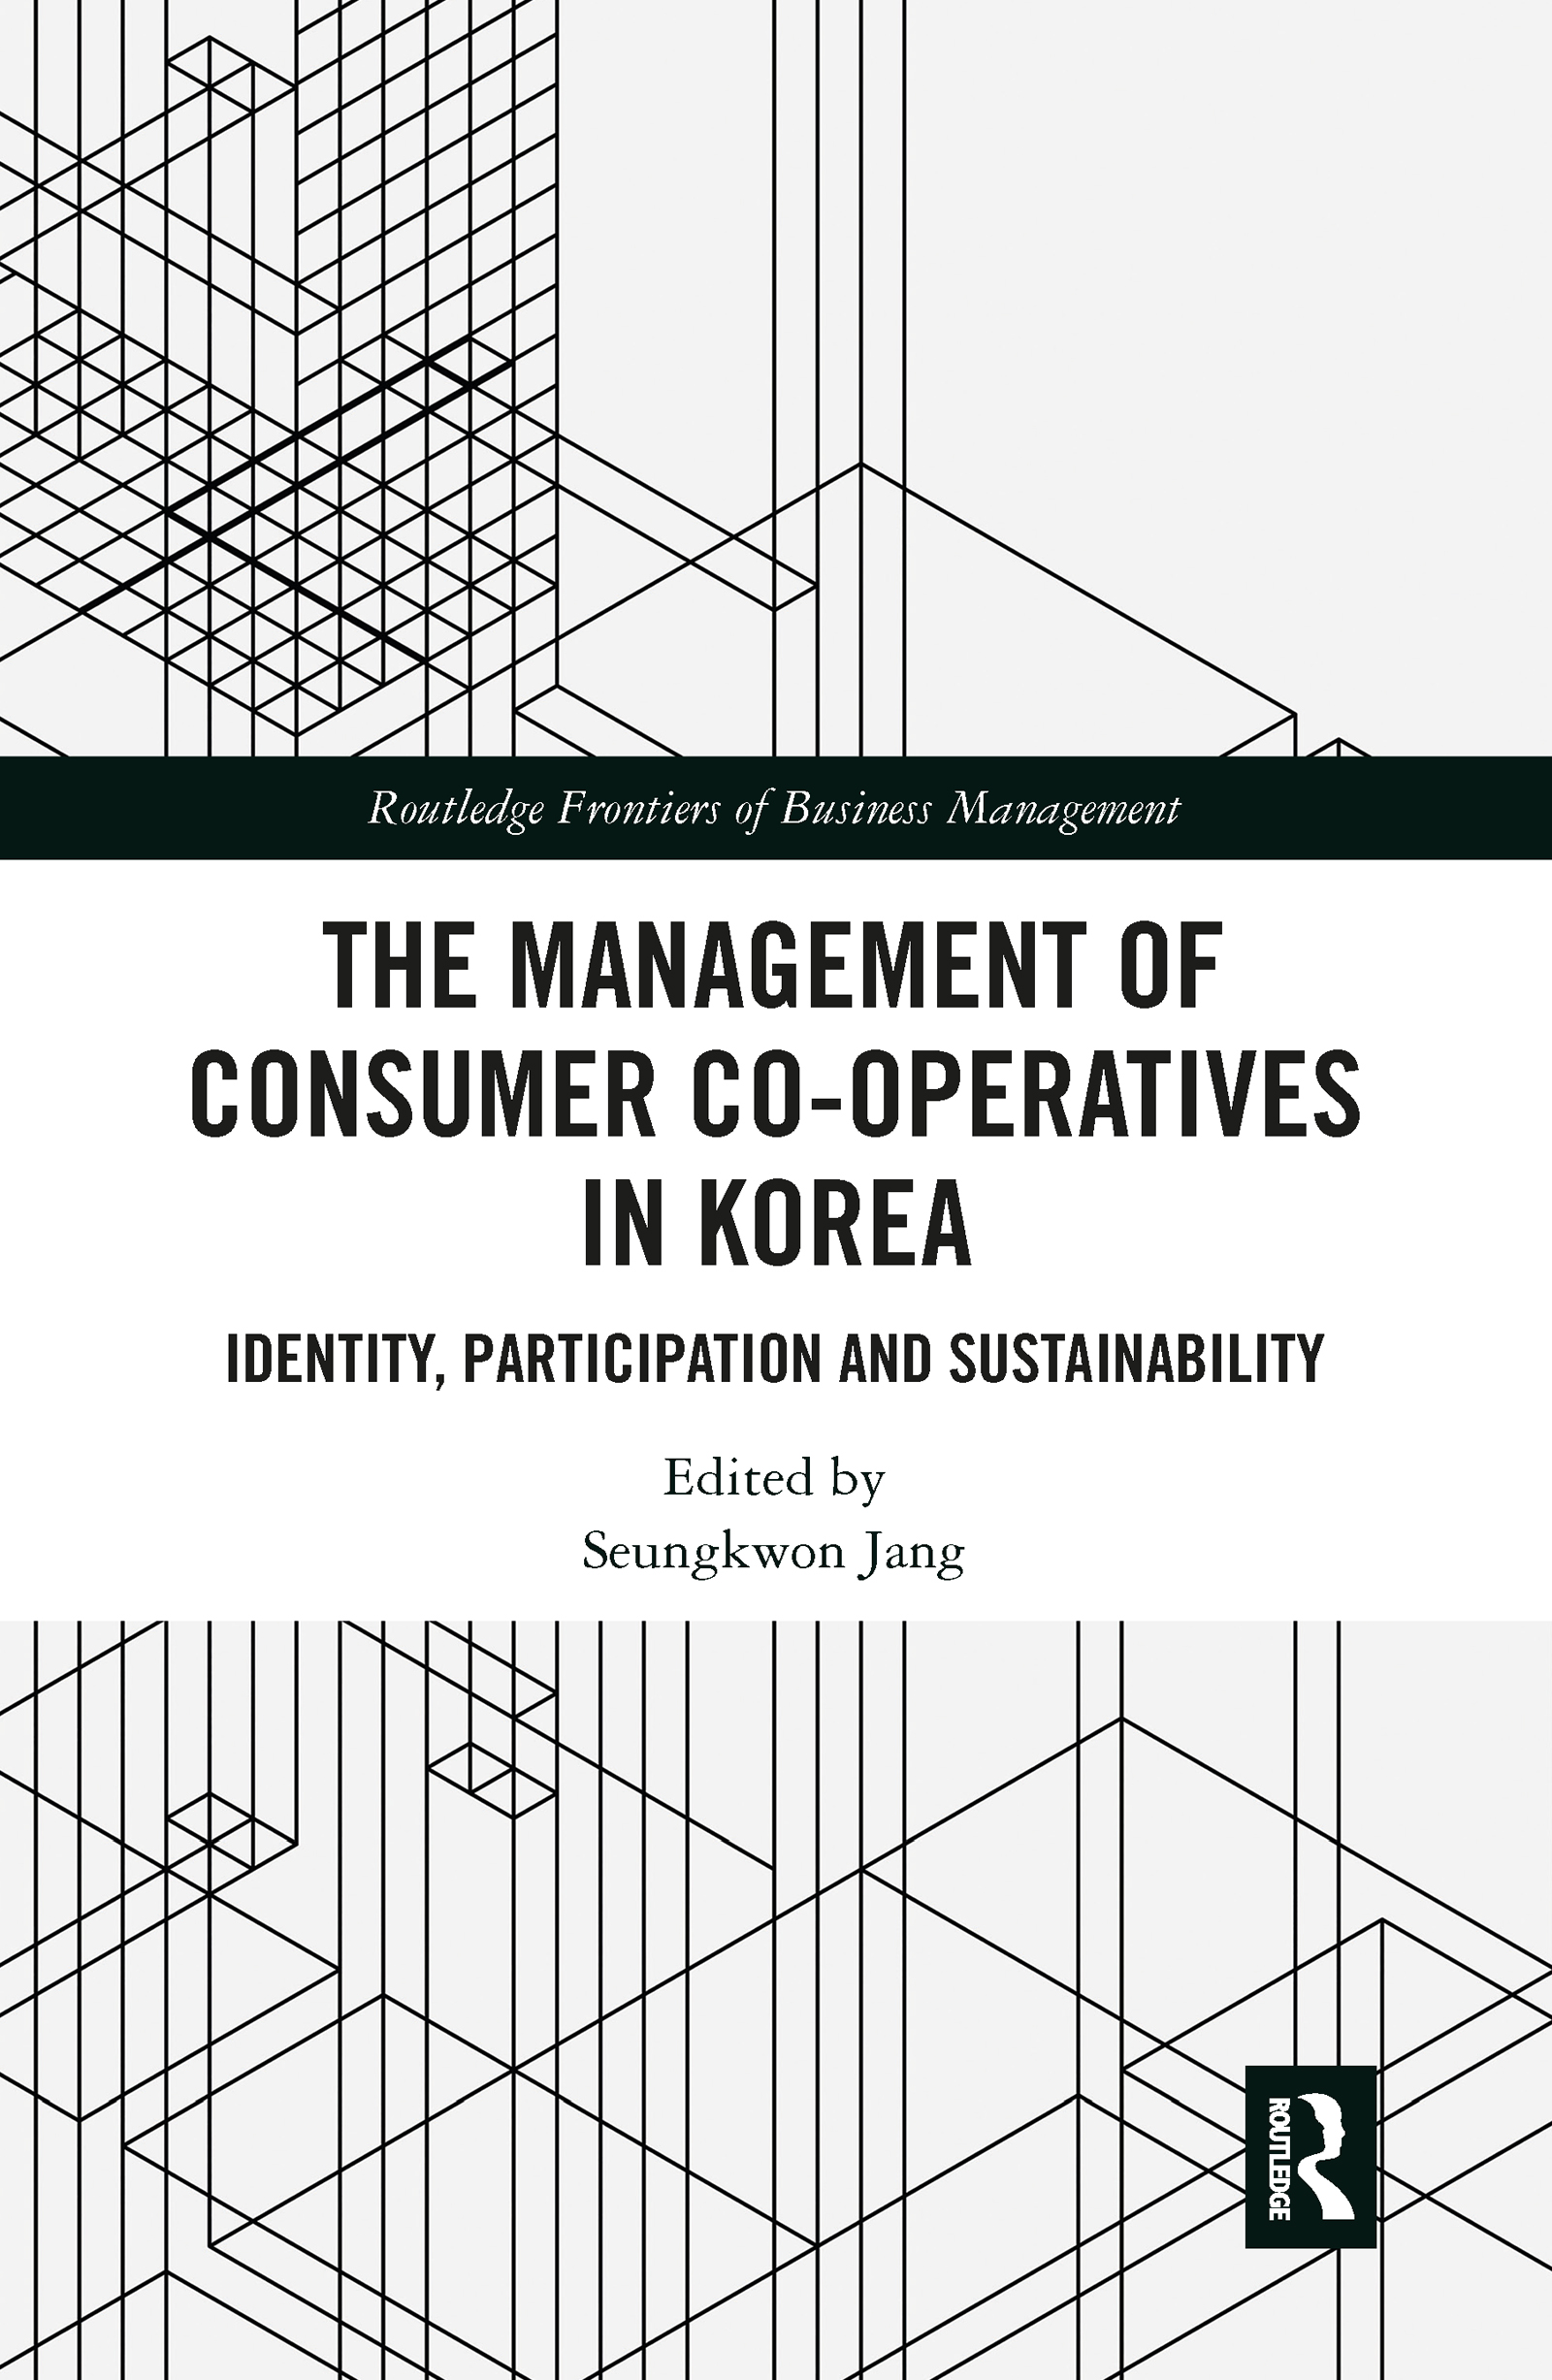 The Management of Consumer Co-Operatives in Korea